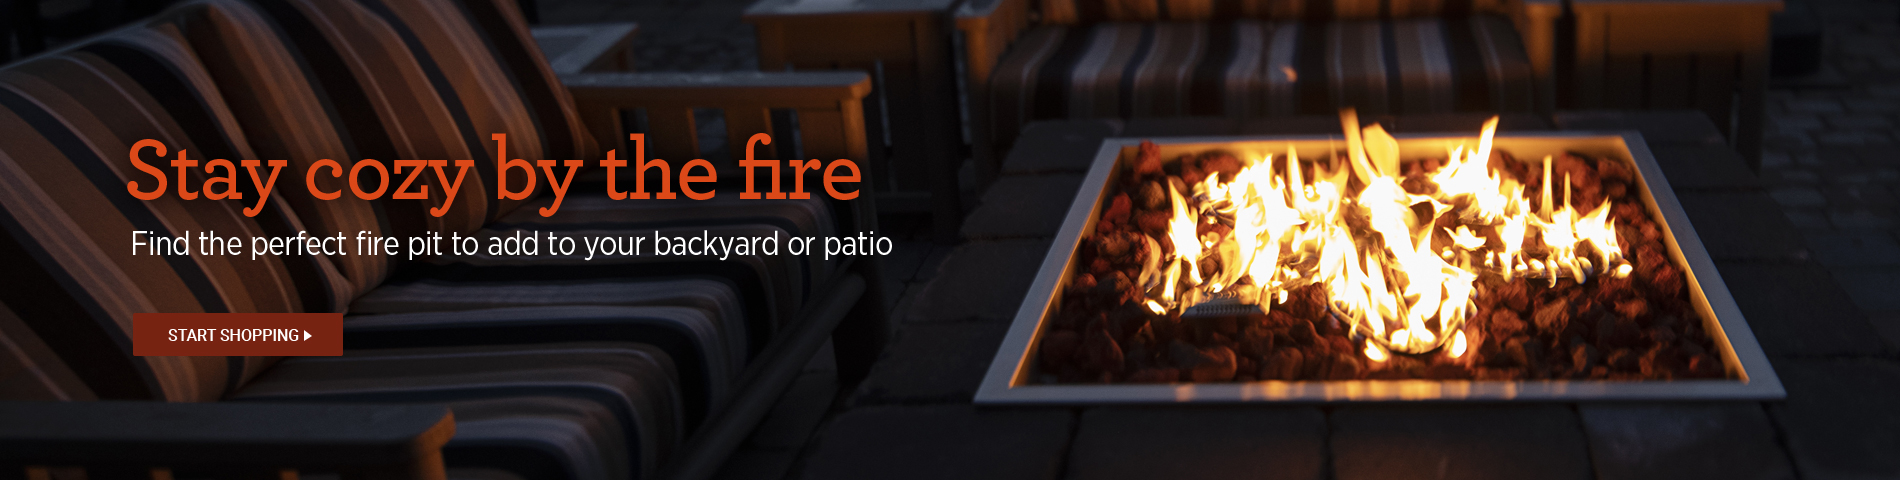 Find the perfect fire pit for your backyard or patio.